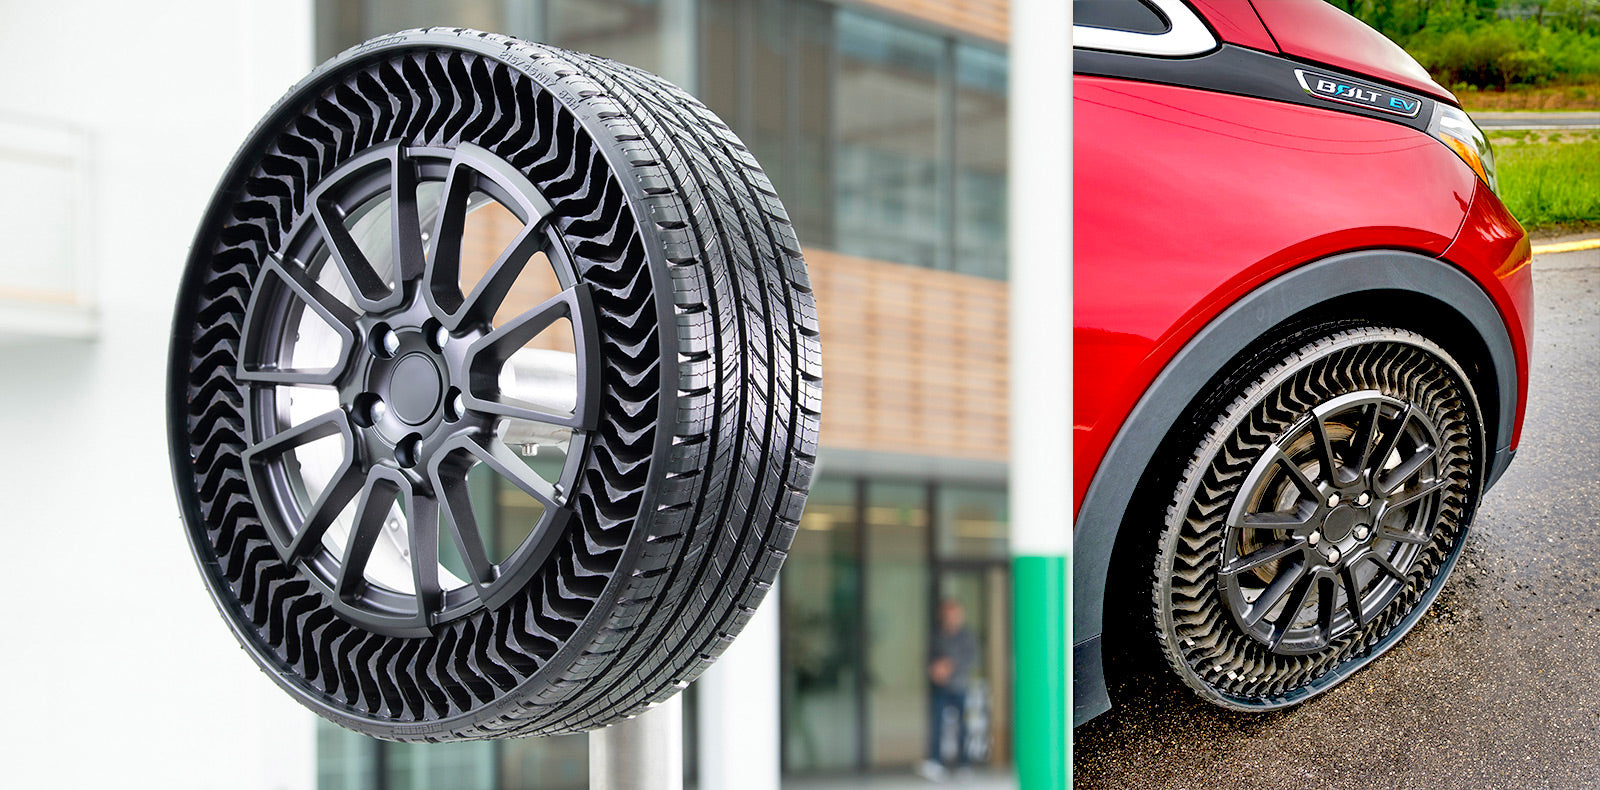 No more flats: Michelin and GM to bring airless tires to passenger cars by 2024